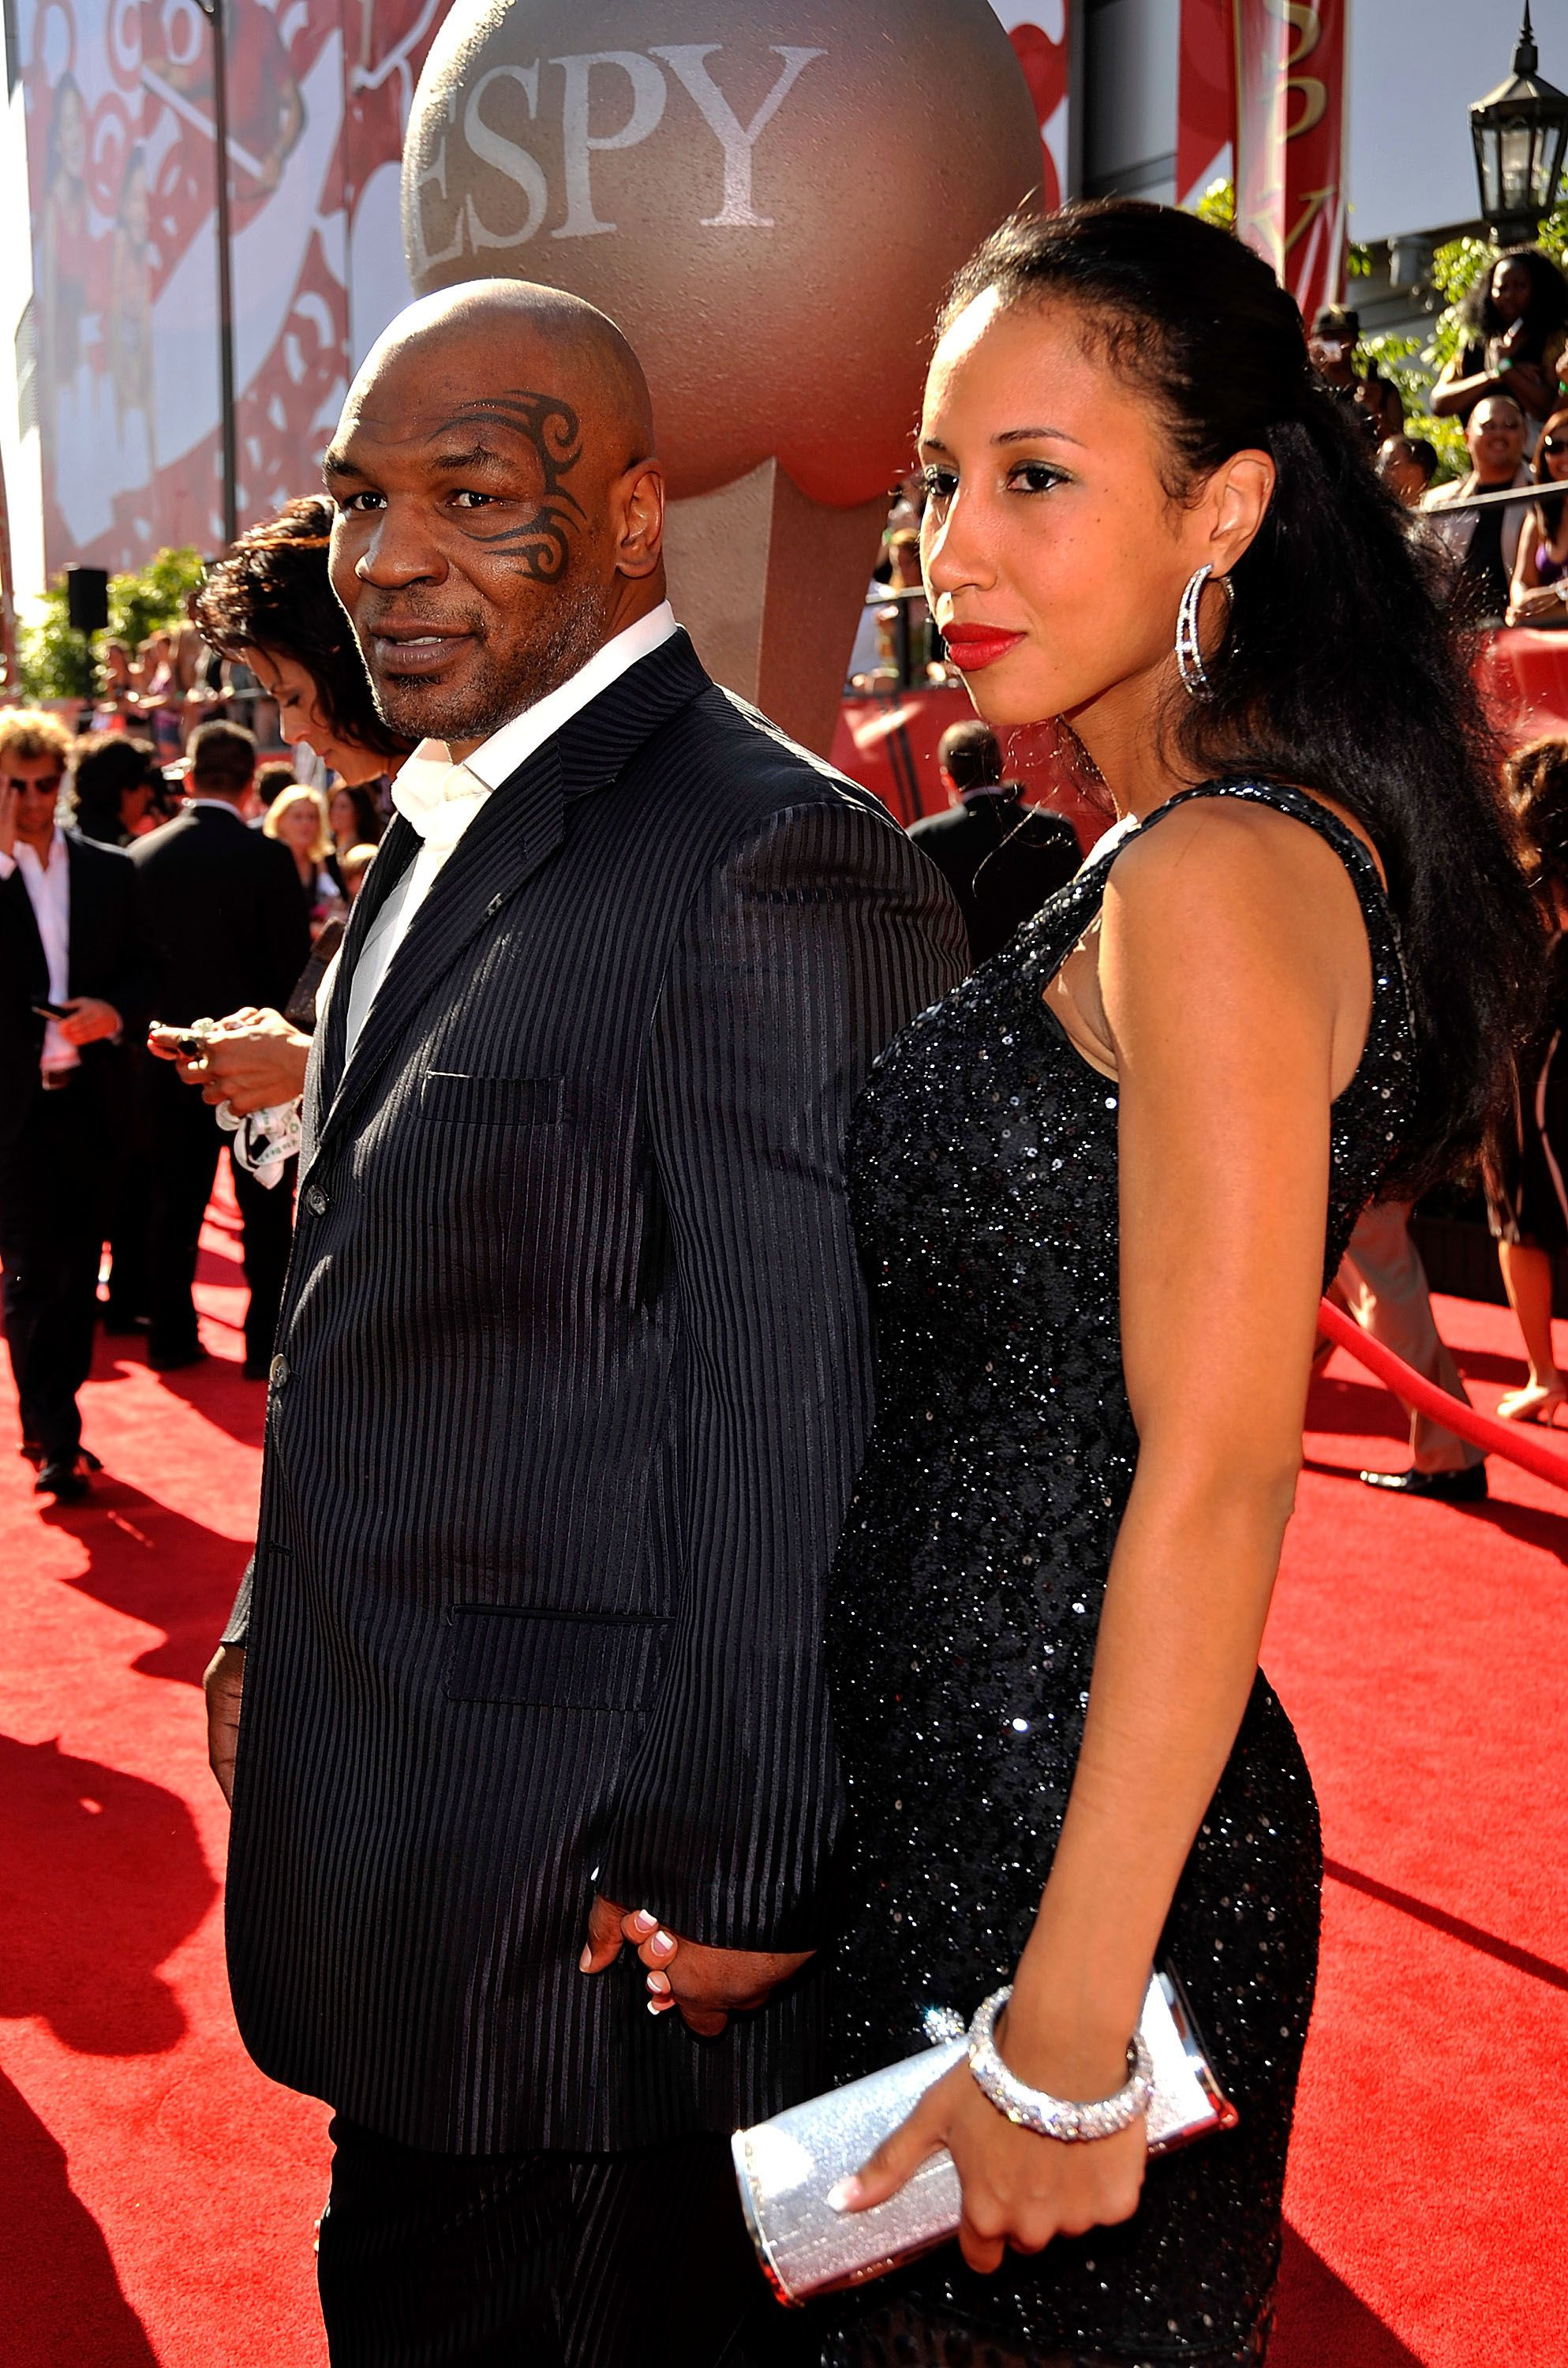 Mike Tyson with ex-wife Monica Turner at the 17th annual ESPY Awards in 2009 | Source: Getty Images